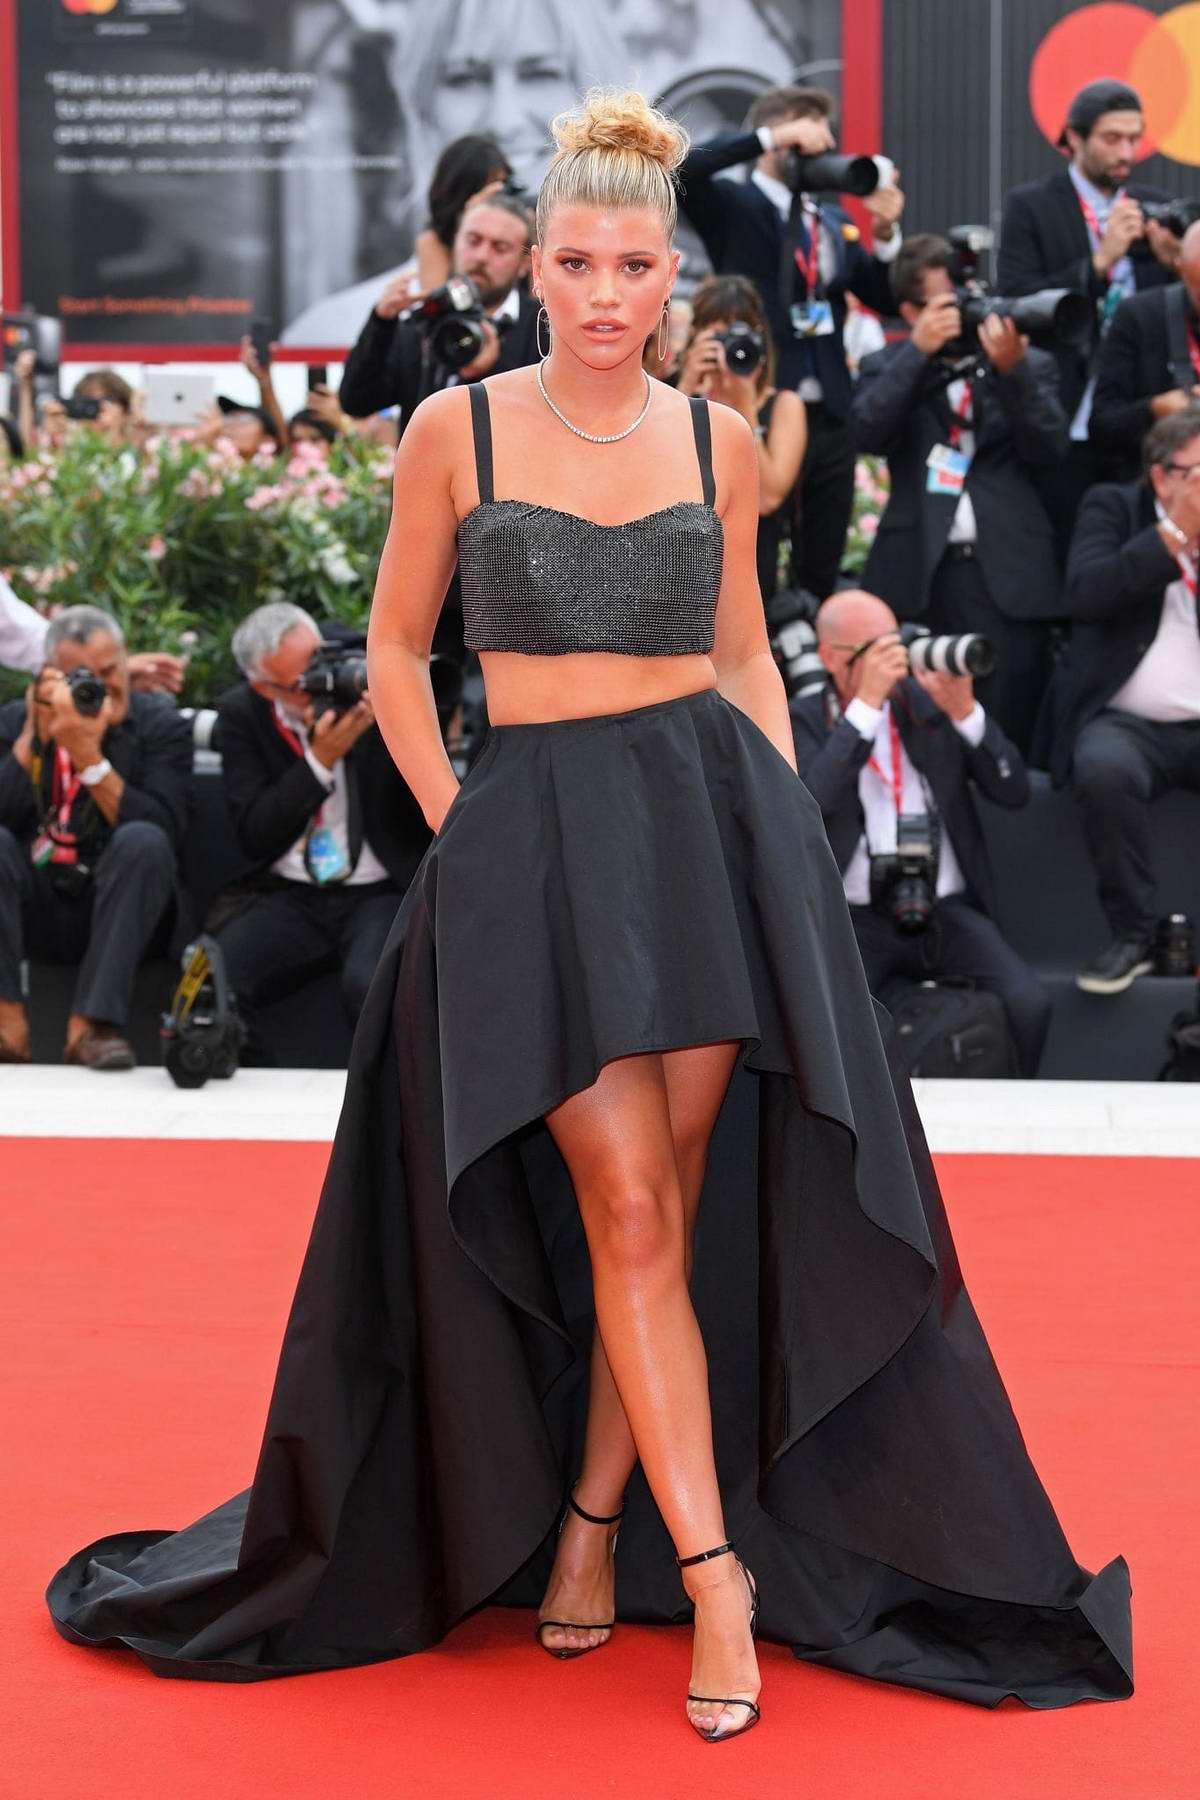 Sofia Richie attends the Opening Ceremony and 'La Vérité' (The Truth) screening during the 76th Venice Film Festival in Venice, Italy